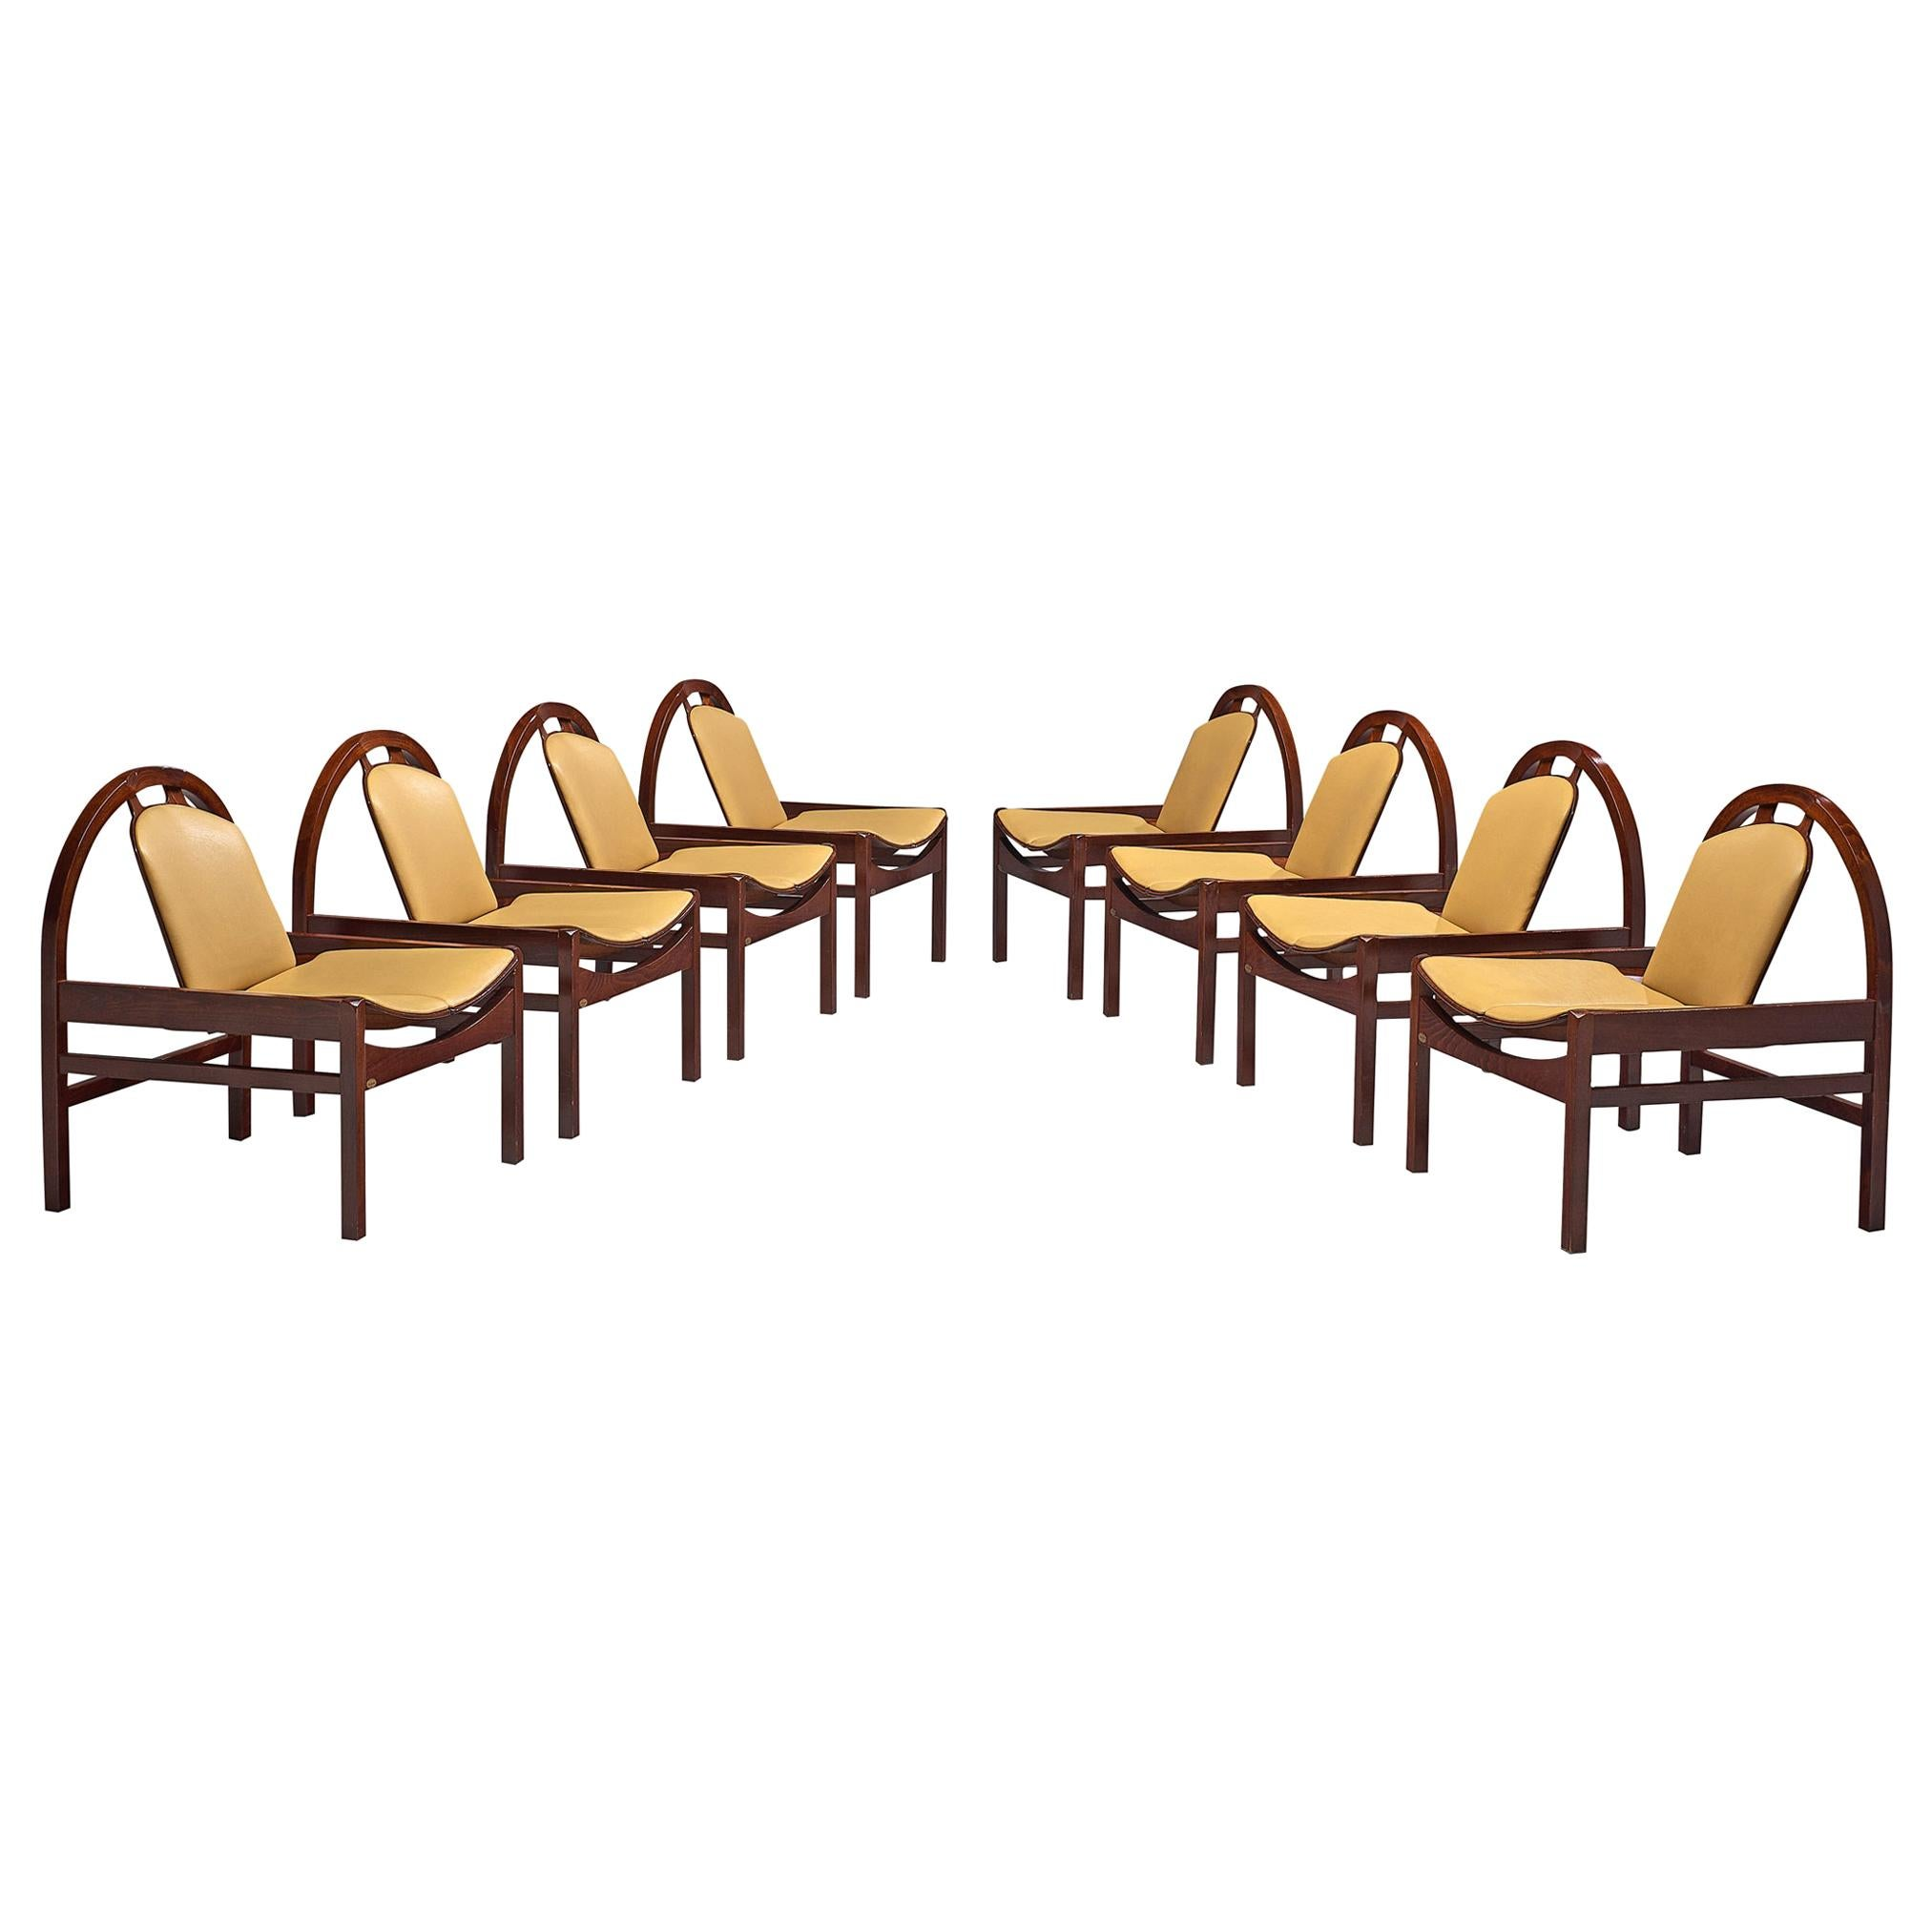 'Argos' Lounge Chairs by Baumann in Beech and Leather